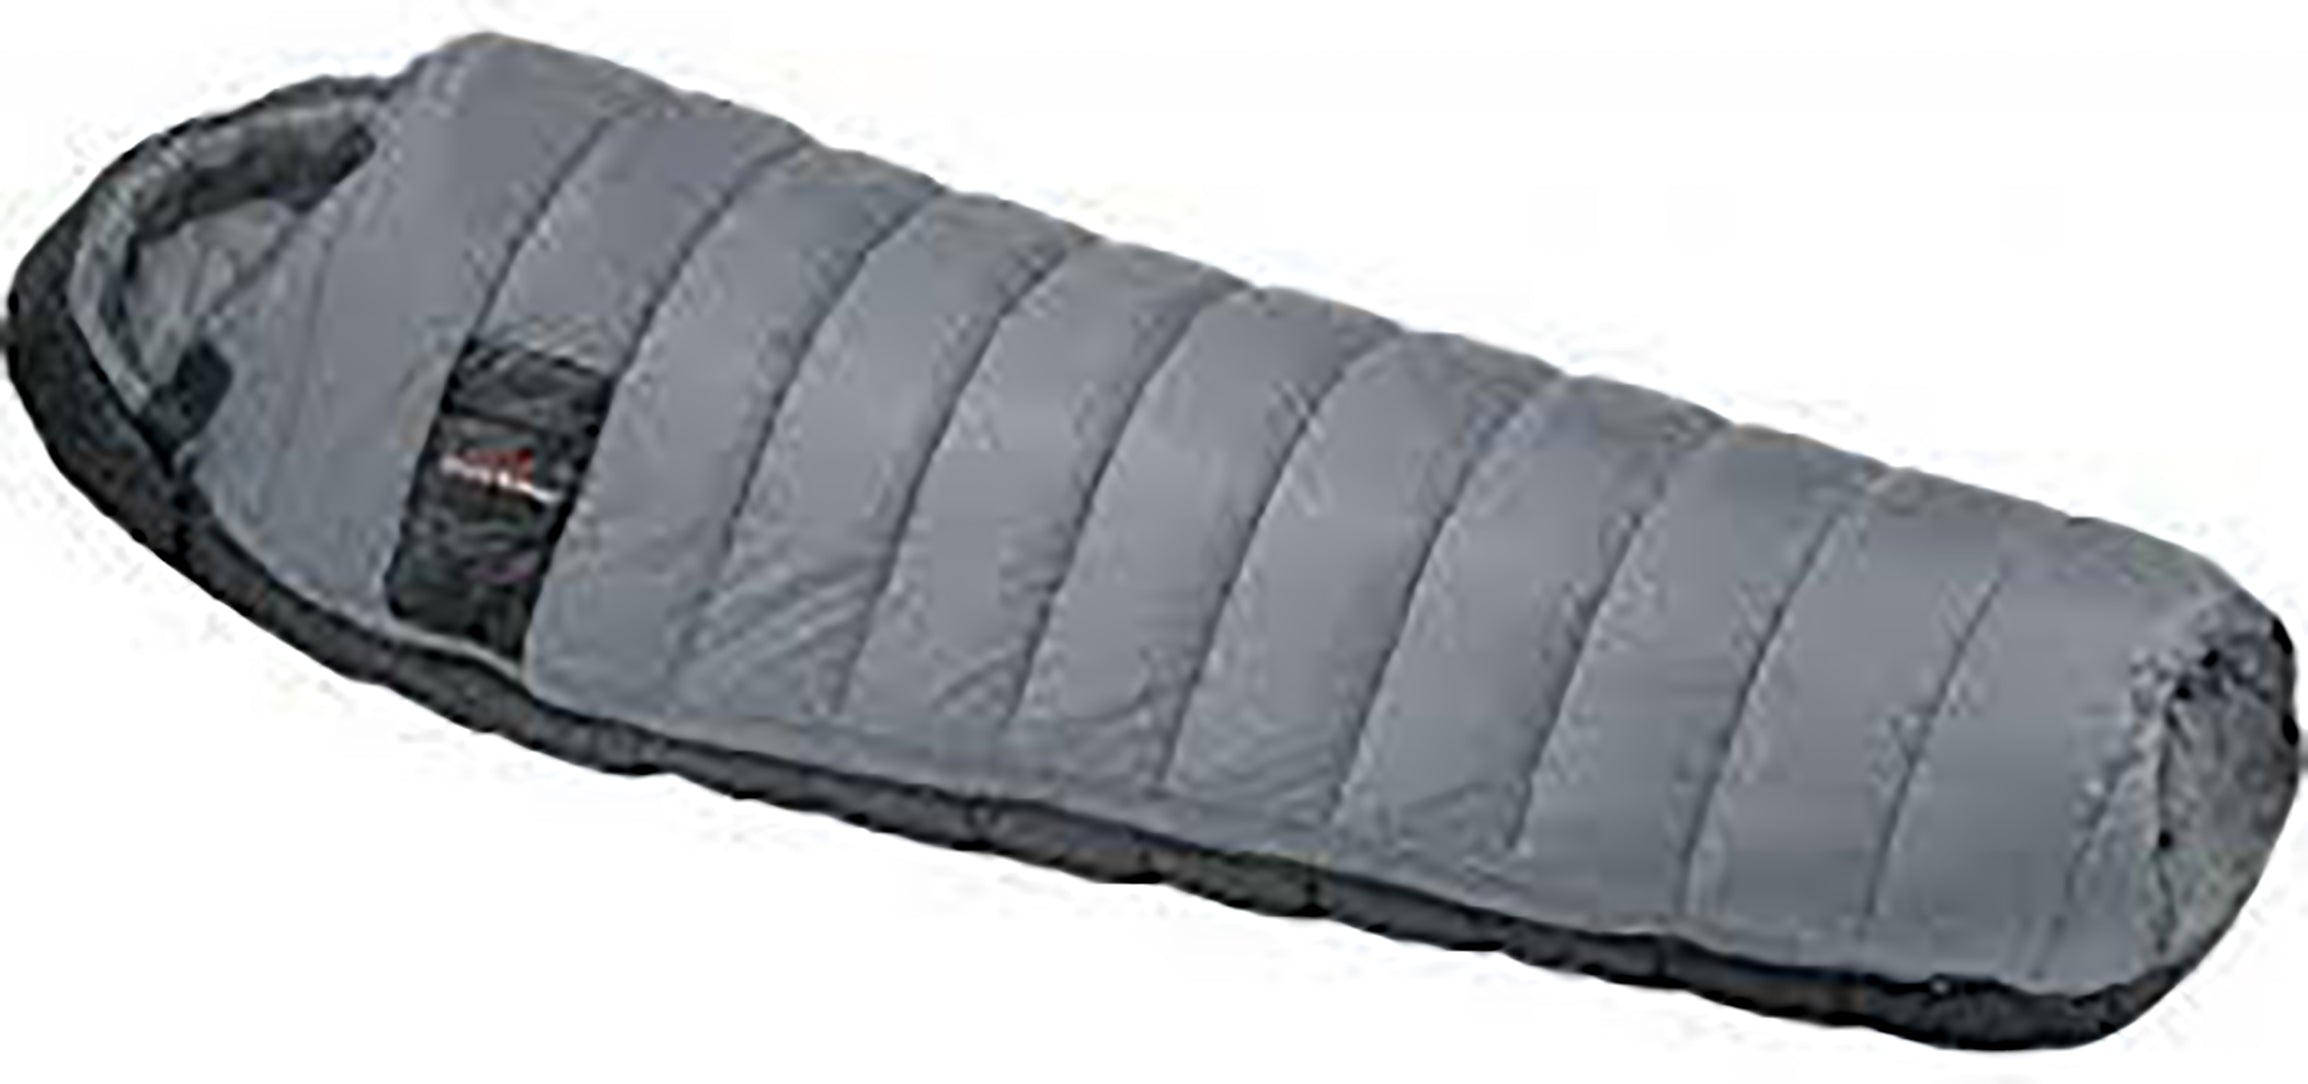 This sleeping bag is sure to keep you warm enough on a  freezing night.